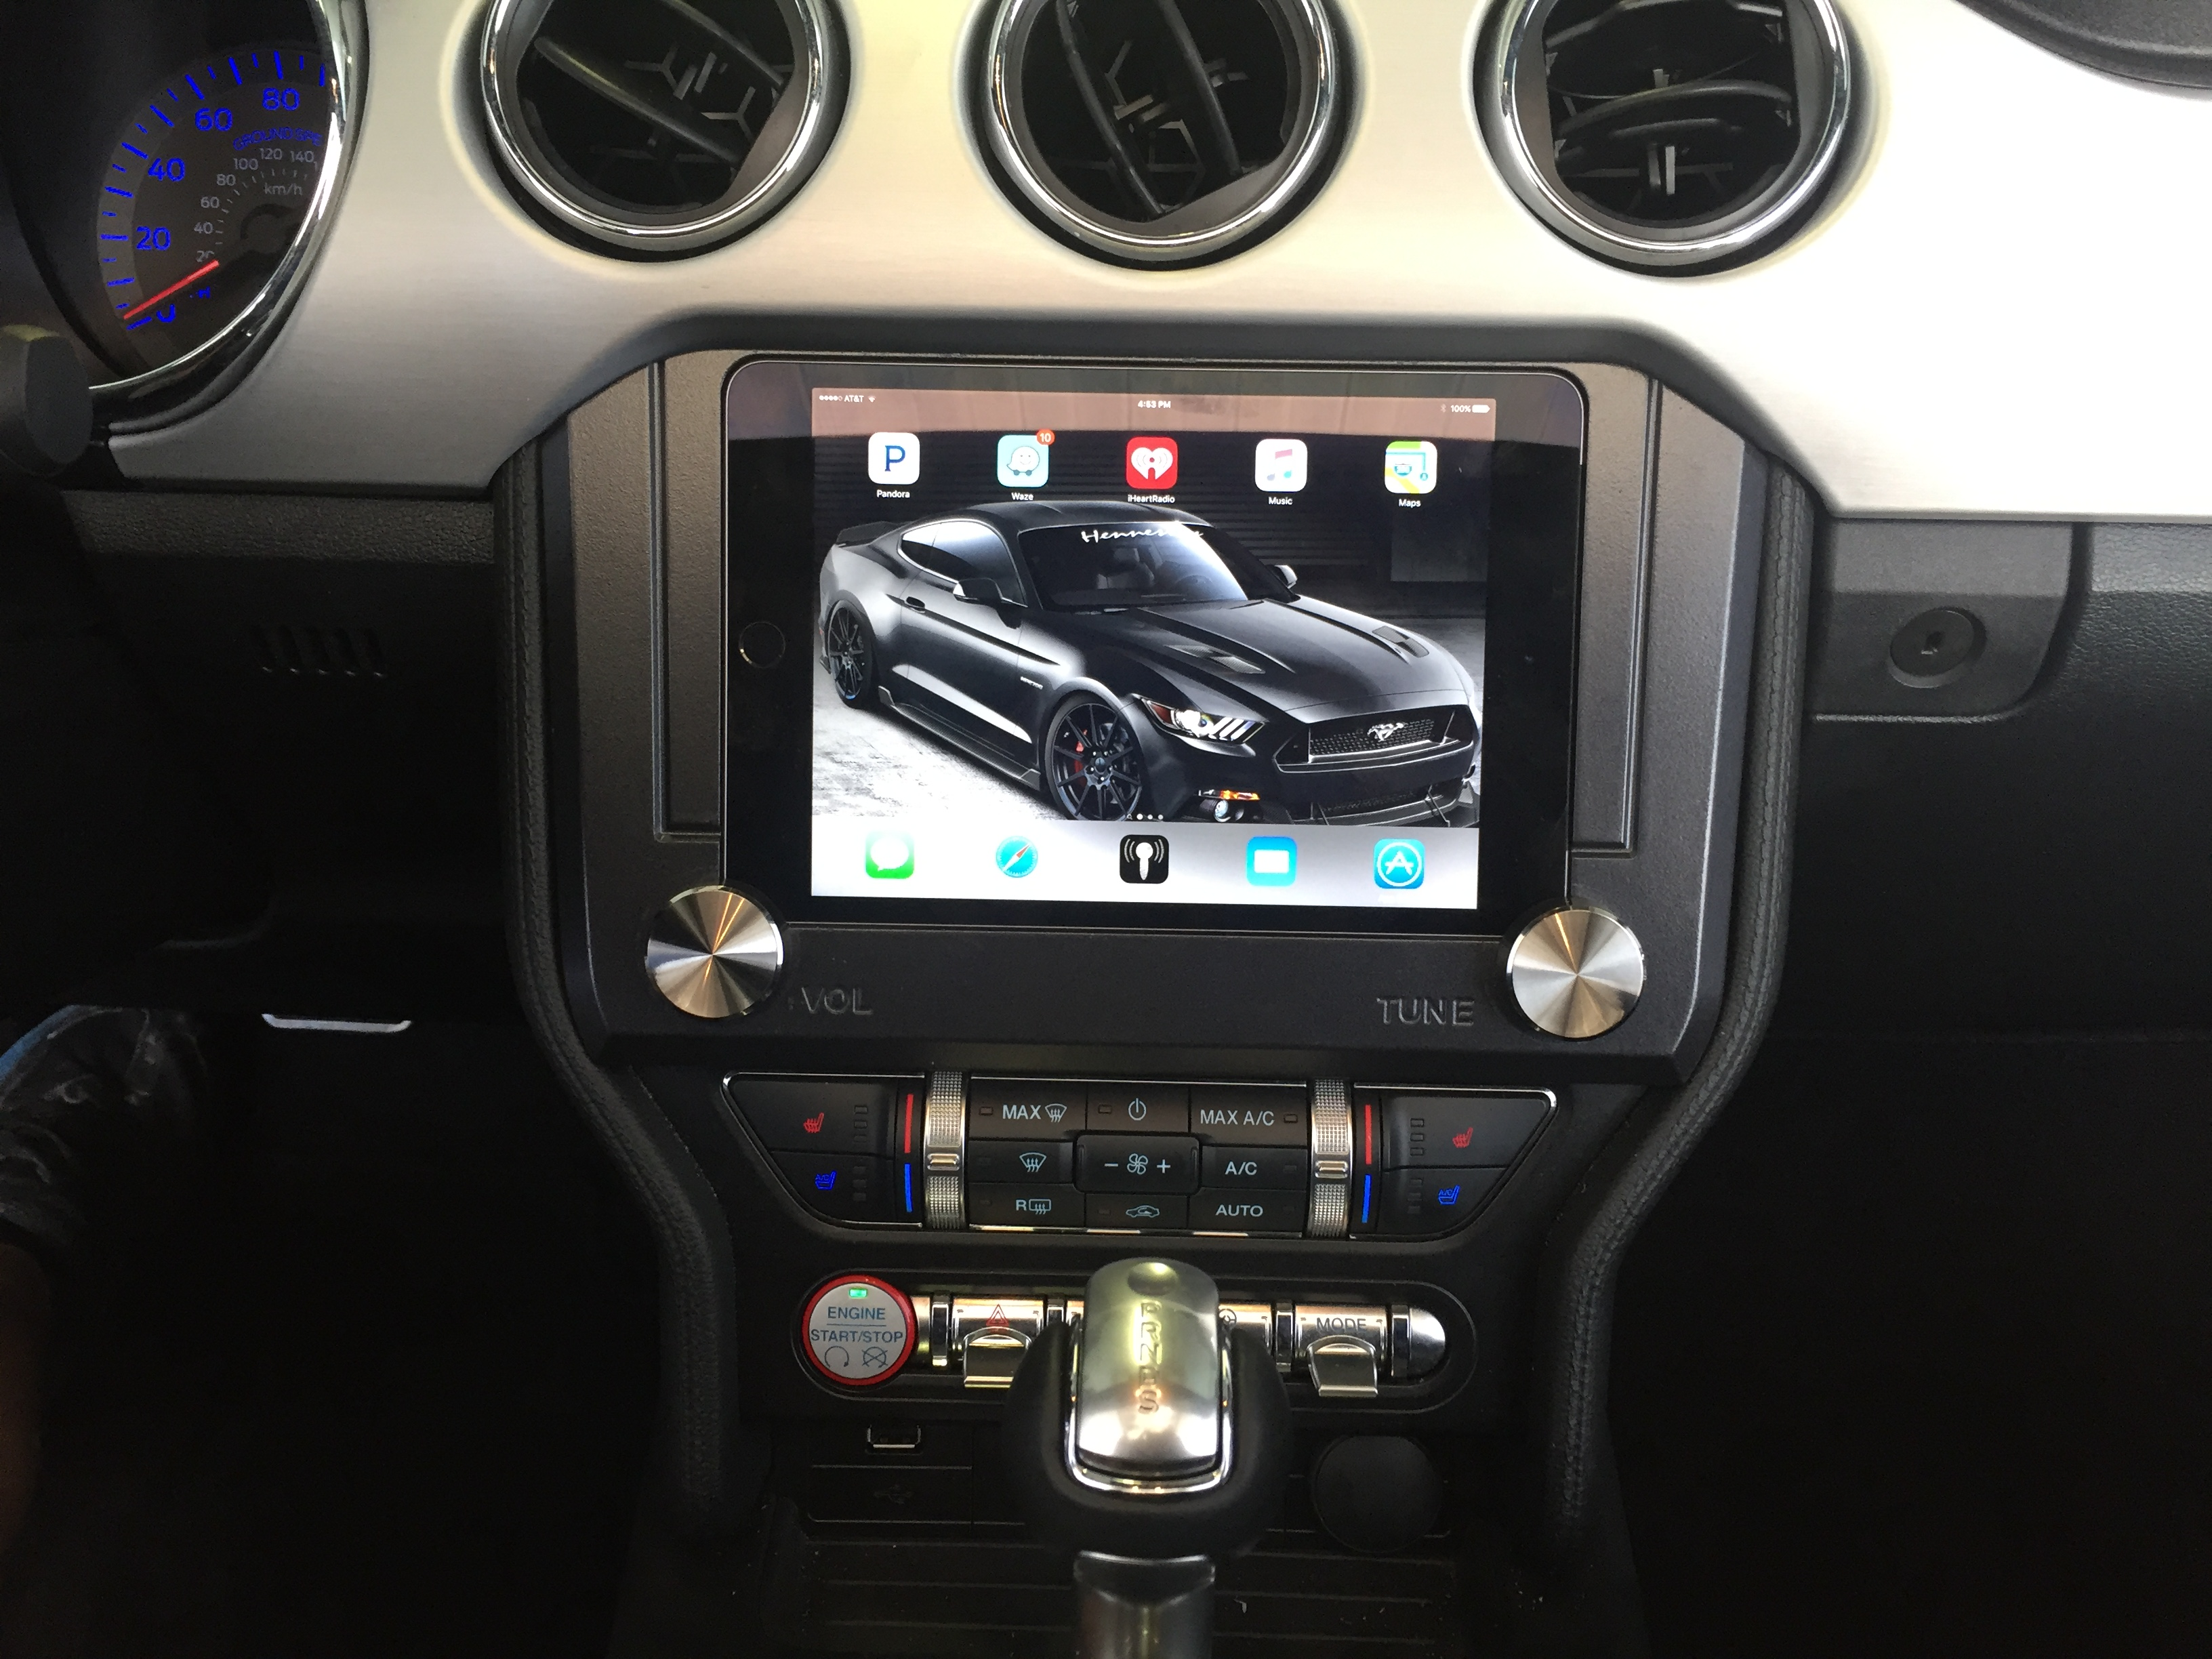 Ipad Mini Nexus 7 Dash